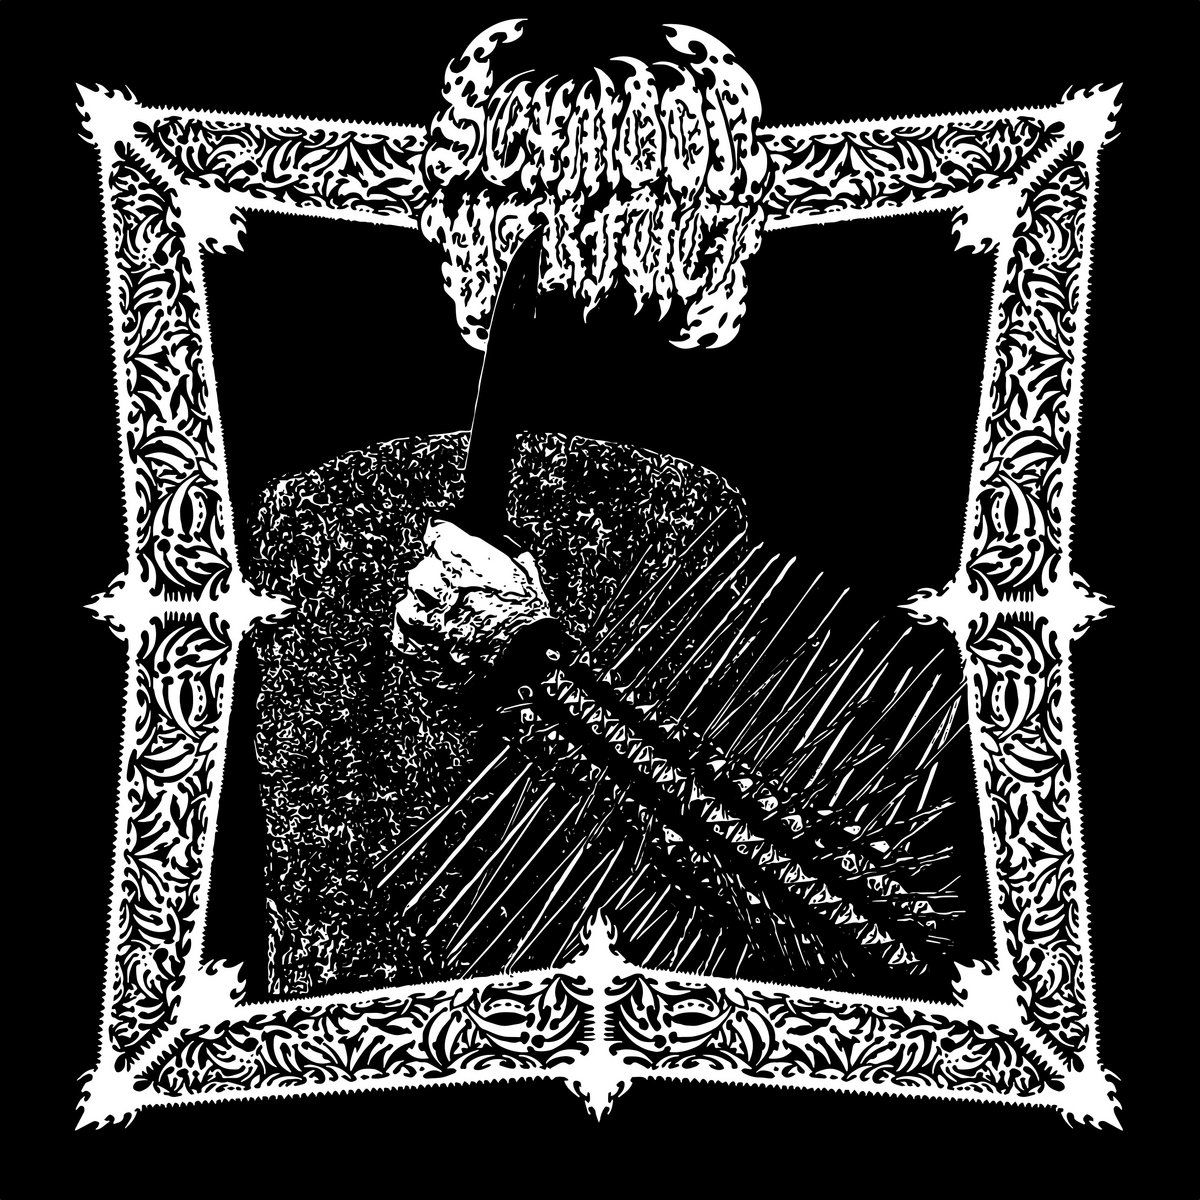 Sexmoon Warfuck - Possessed by Immoral Pleasures